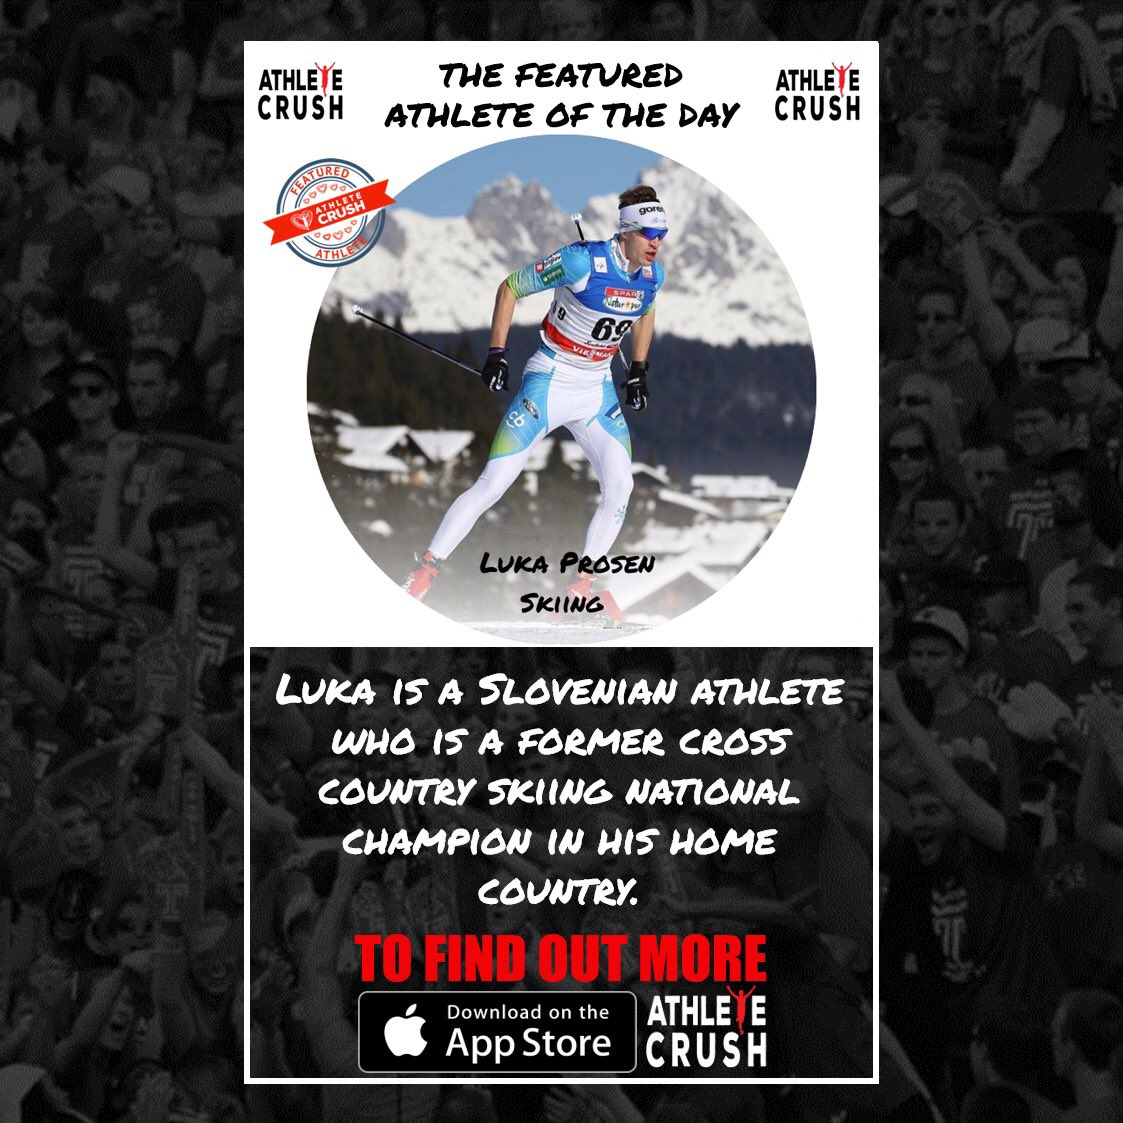 We're excited to announce today's #FeaturedAthlete on our new sport-specific social media app, Athlete CRUSH @lukaprosen   Download the app now by clicking the link in our bio to check it out, and to learn more about Luka and all the otherathletes on our platform!pic.twitter.com/xjo0jriW1l